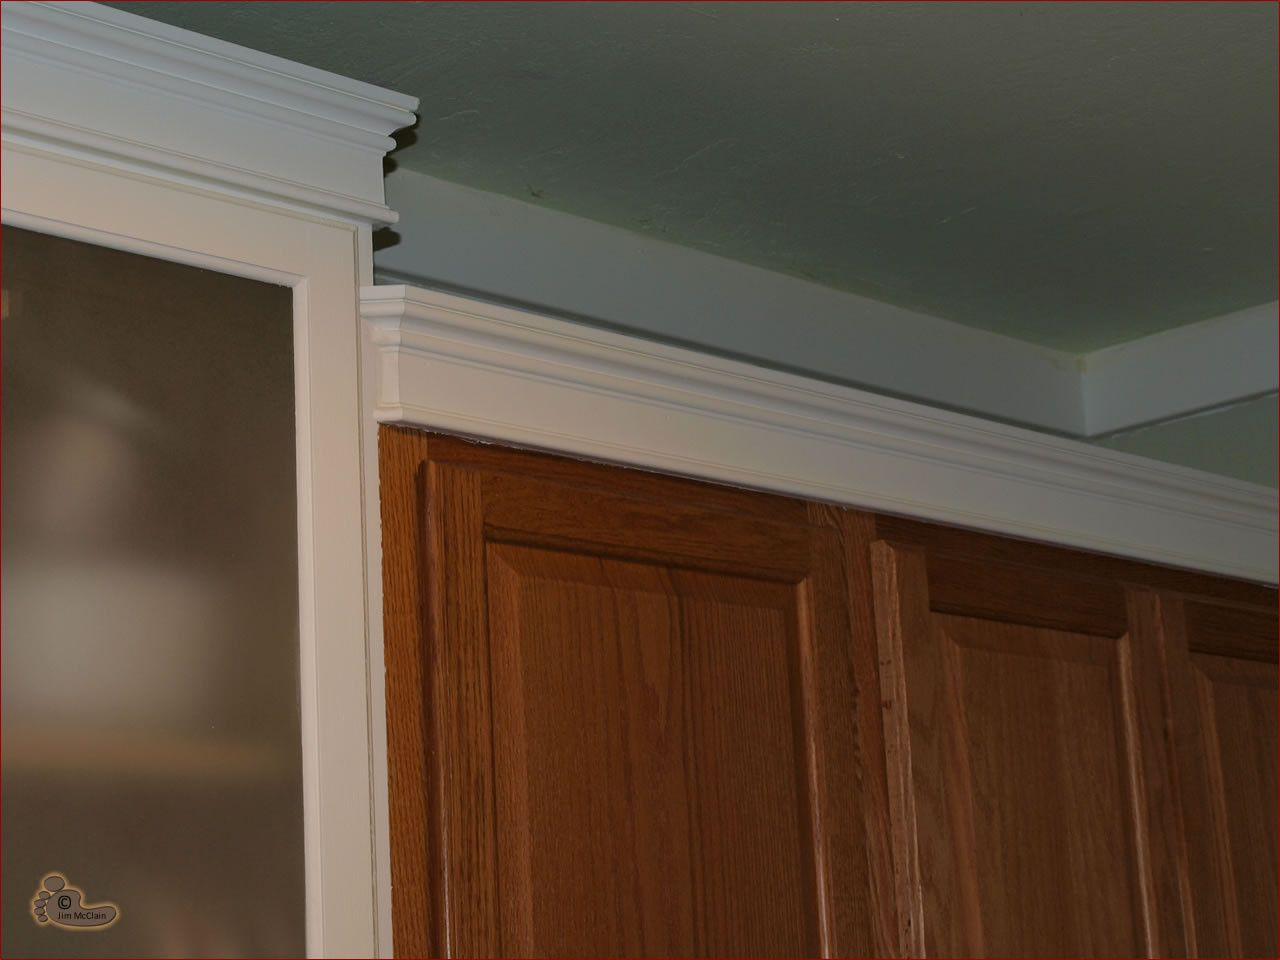 99 Crown Molding For Kitchen Cabinet Tops Corner Kitchen Cupboard Ideas Check More At H Kitchen Cabinet Crown Molding Kitchen Cabinets Cabinet Door Makeover